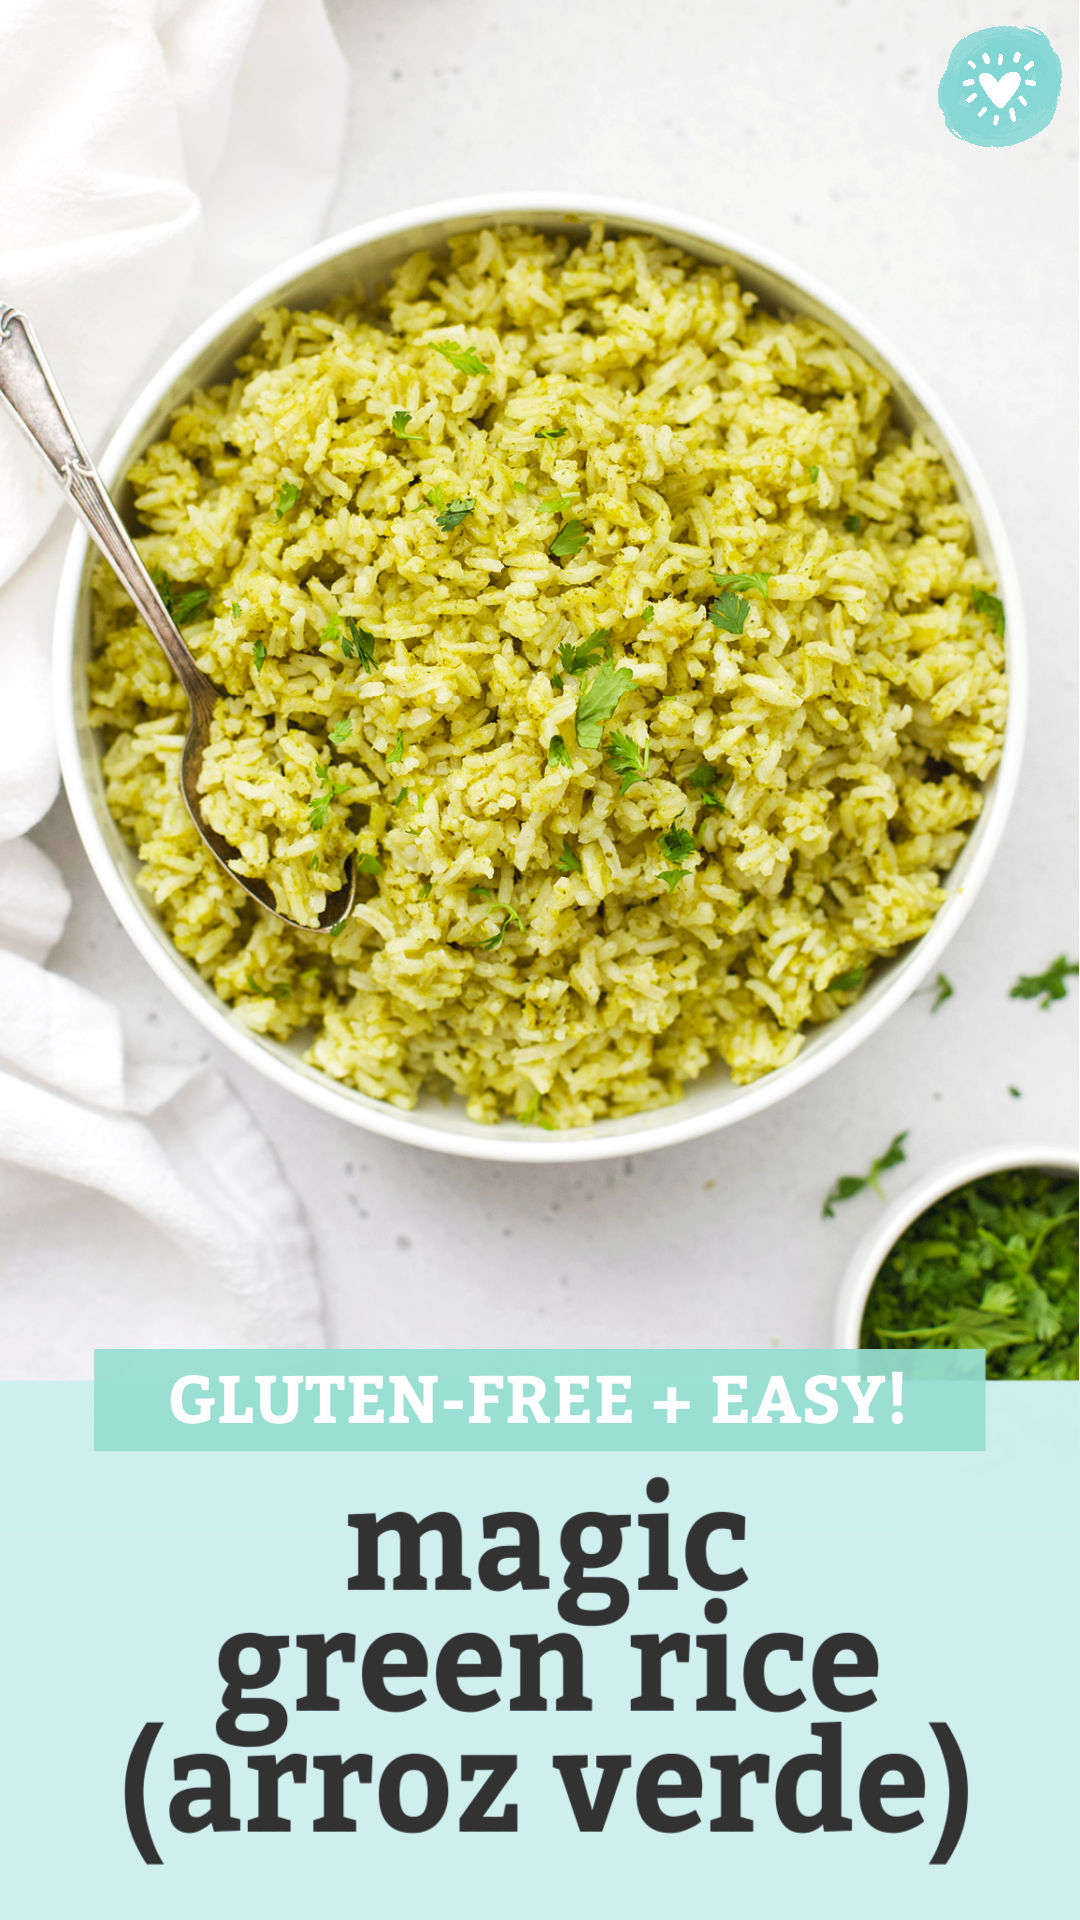 """Mexican Green Rice (Arroz Verde) in a white bowl on a white background with text overlay that reads """"Gluten-Free + Easy Magic Green Rice (Arroz Verde)"""""""